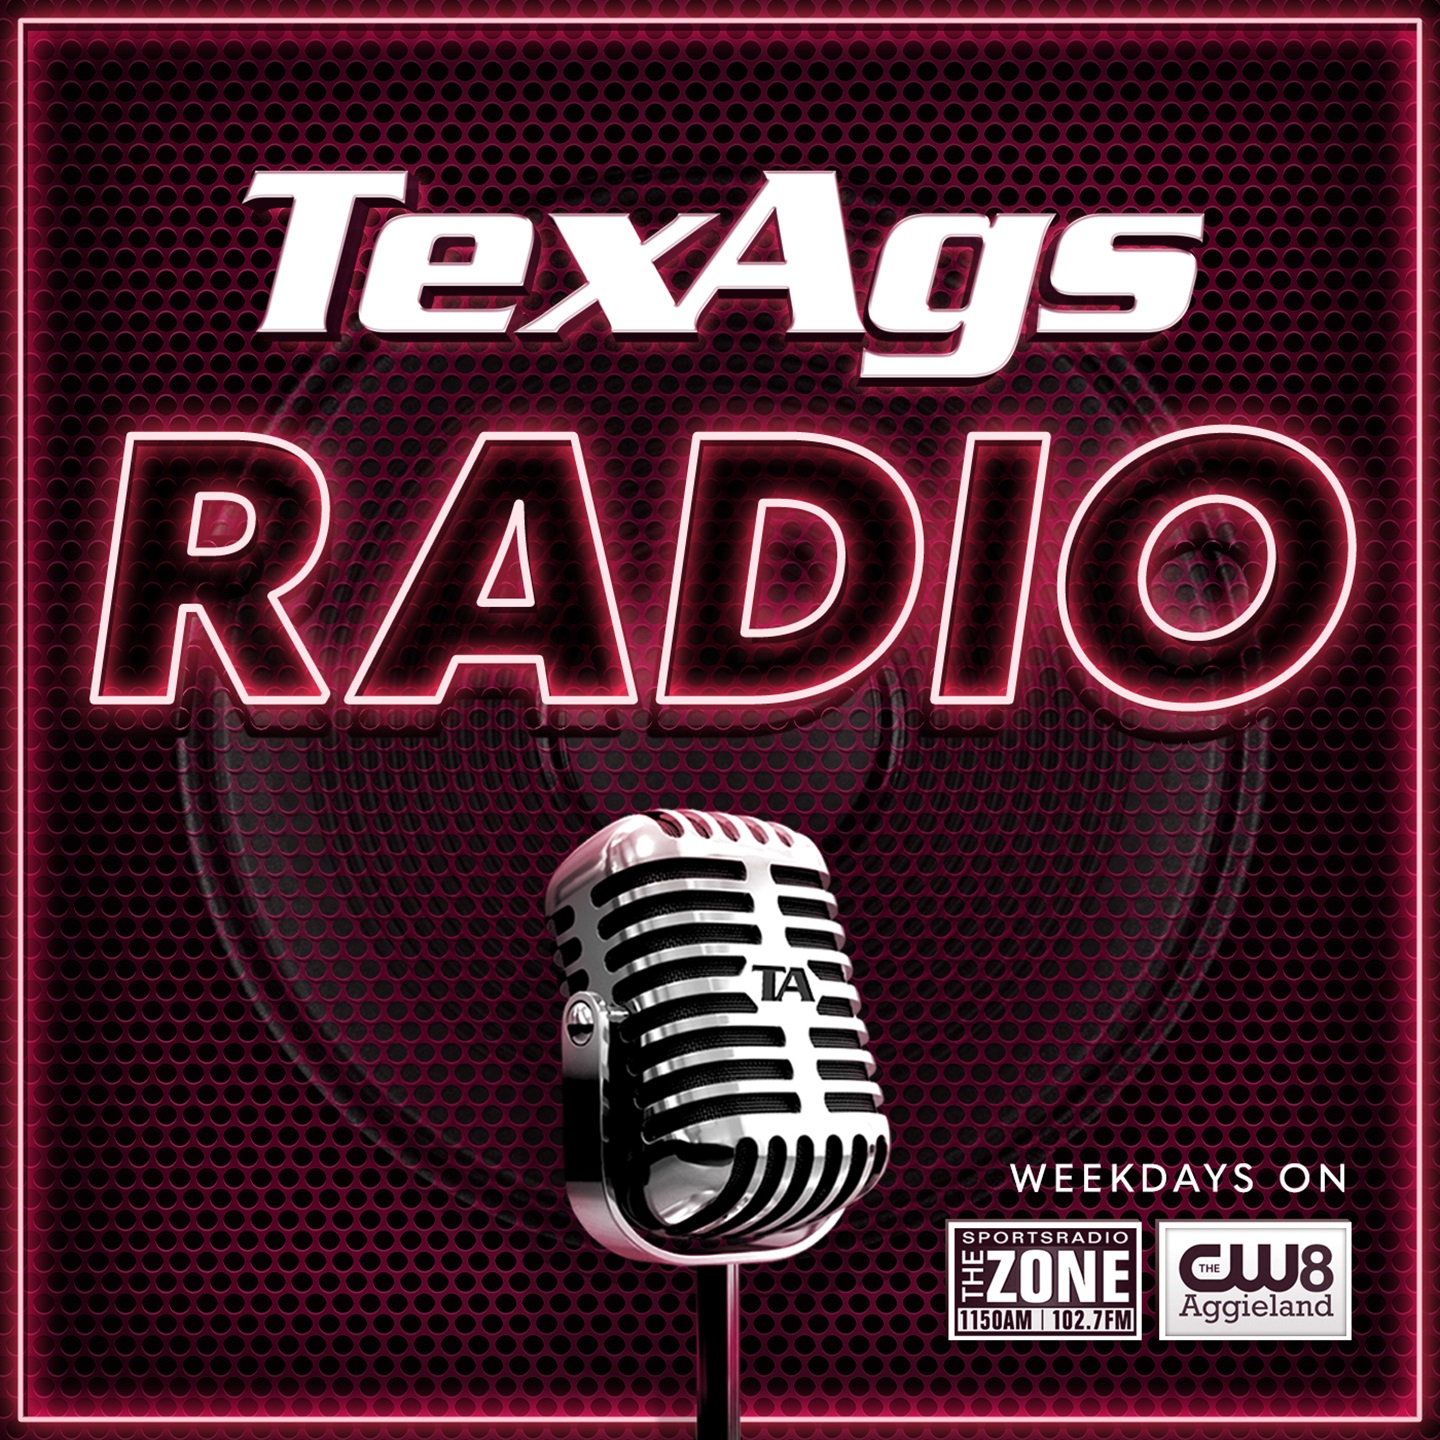 TexAgs Radio: Wednesday (6/12) full show